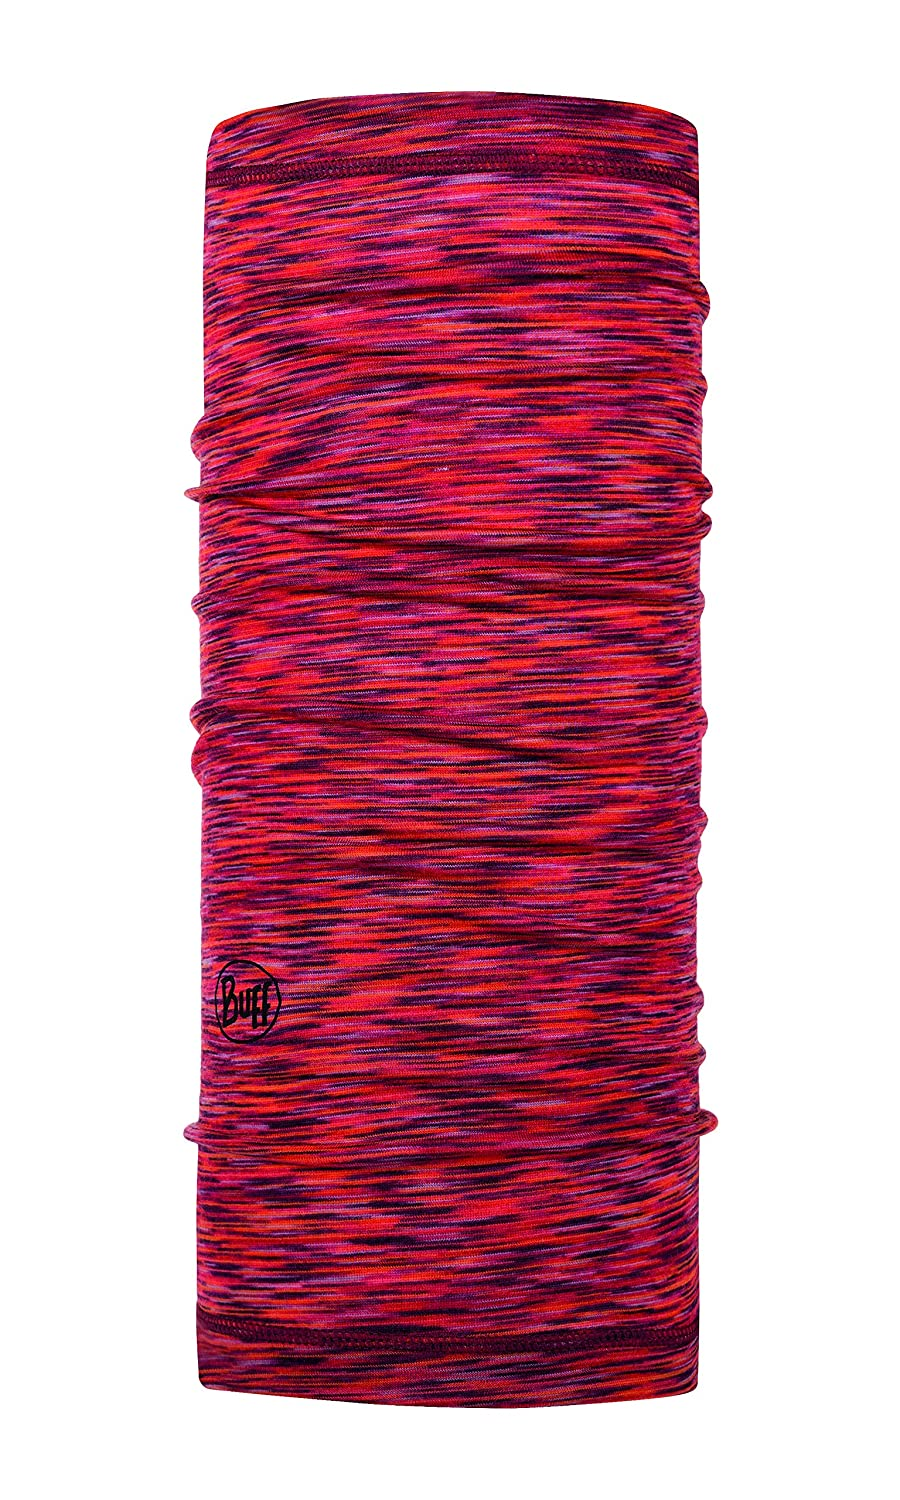 Buff Lightweight Merino Wool Multifunktionstuch Grey Multi Stripes one Size Original Buff S.A.